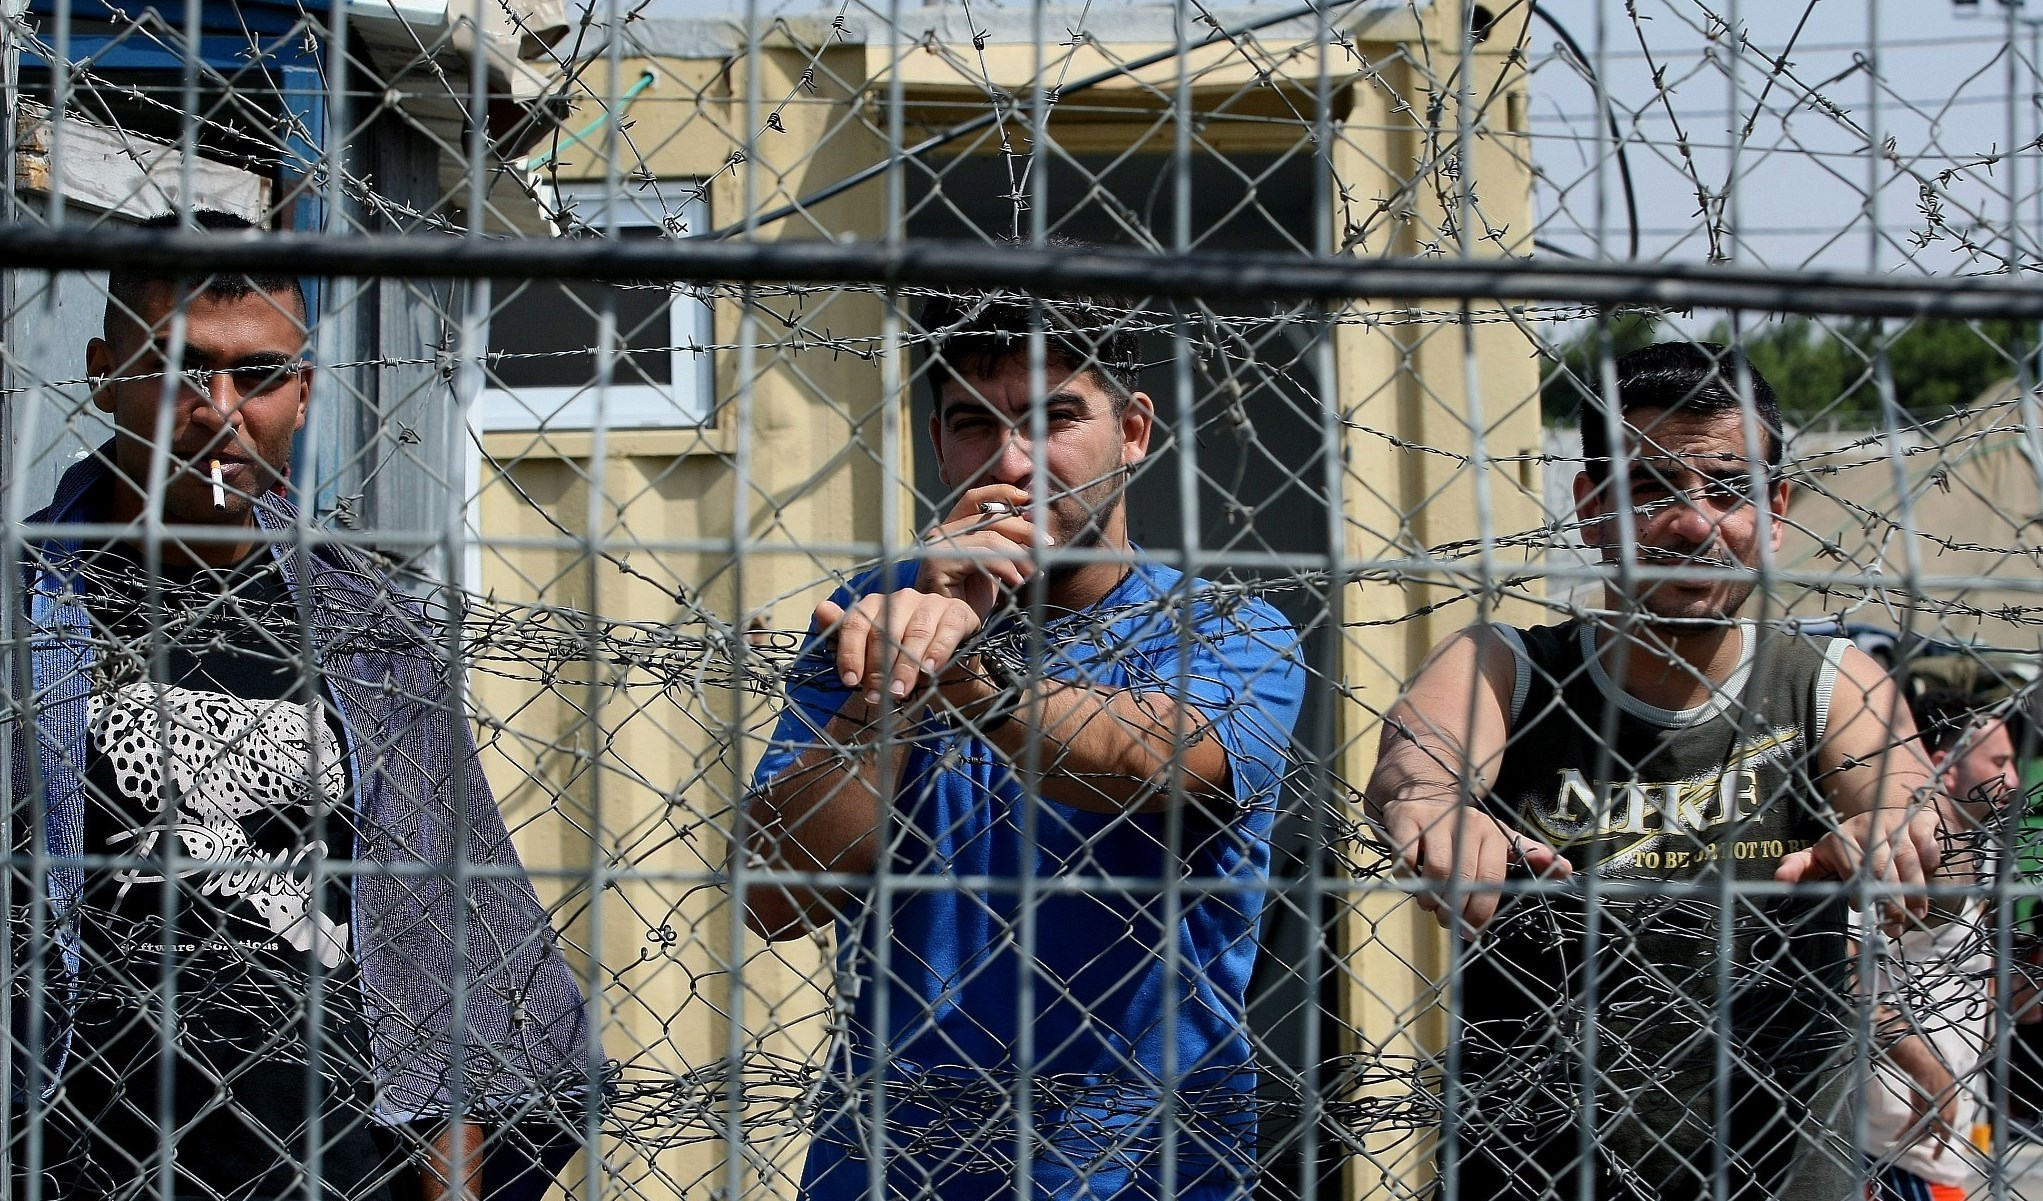 Palestinians are still placed under administrative detention without charges filed against them.